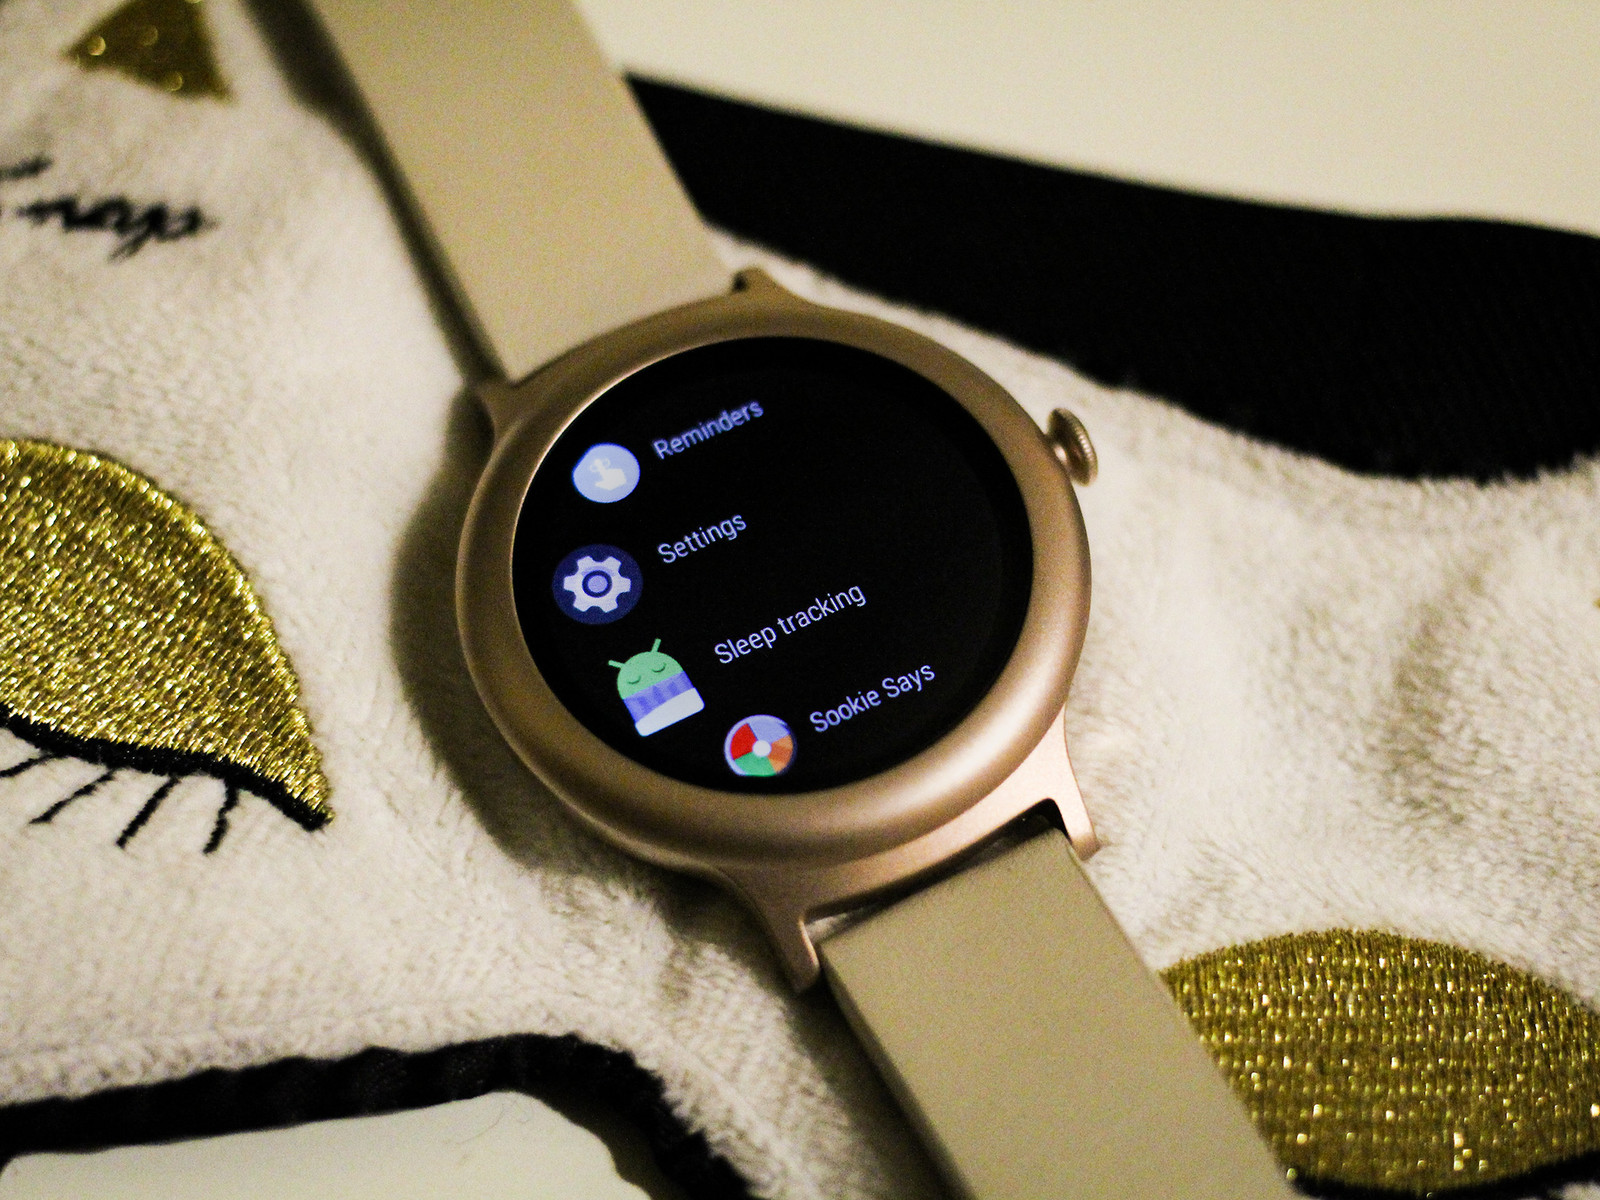 Smart Sleep Tracking Watches Market Including Market Sizing, Market Share By Competitor, Market Share